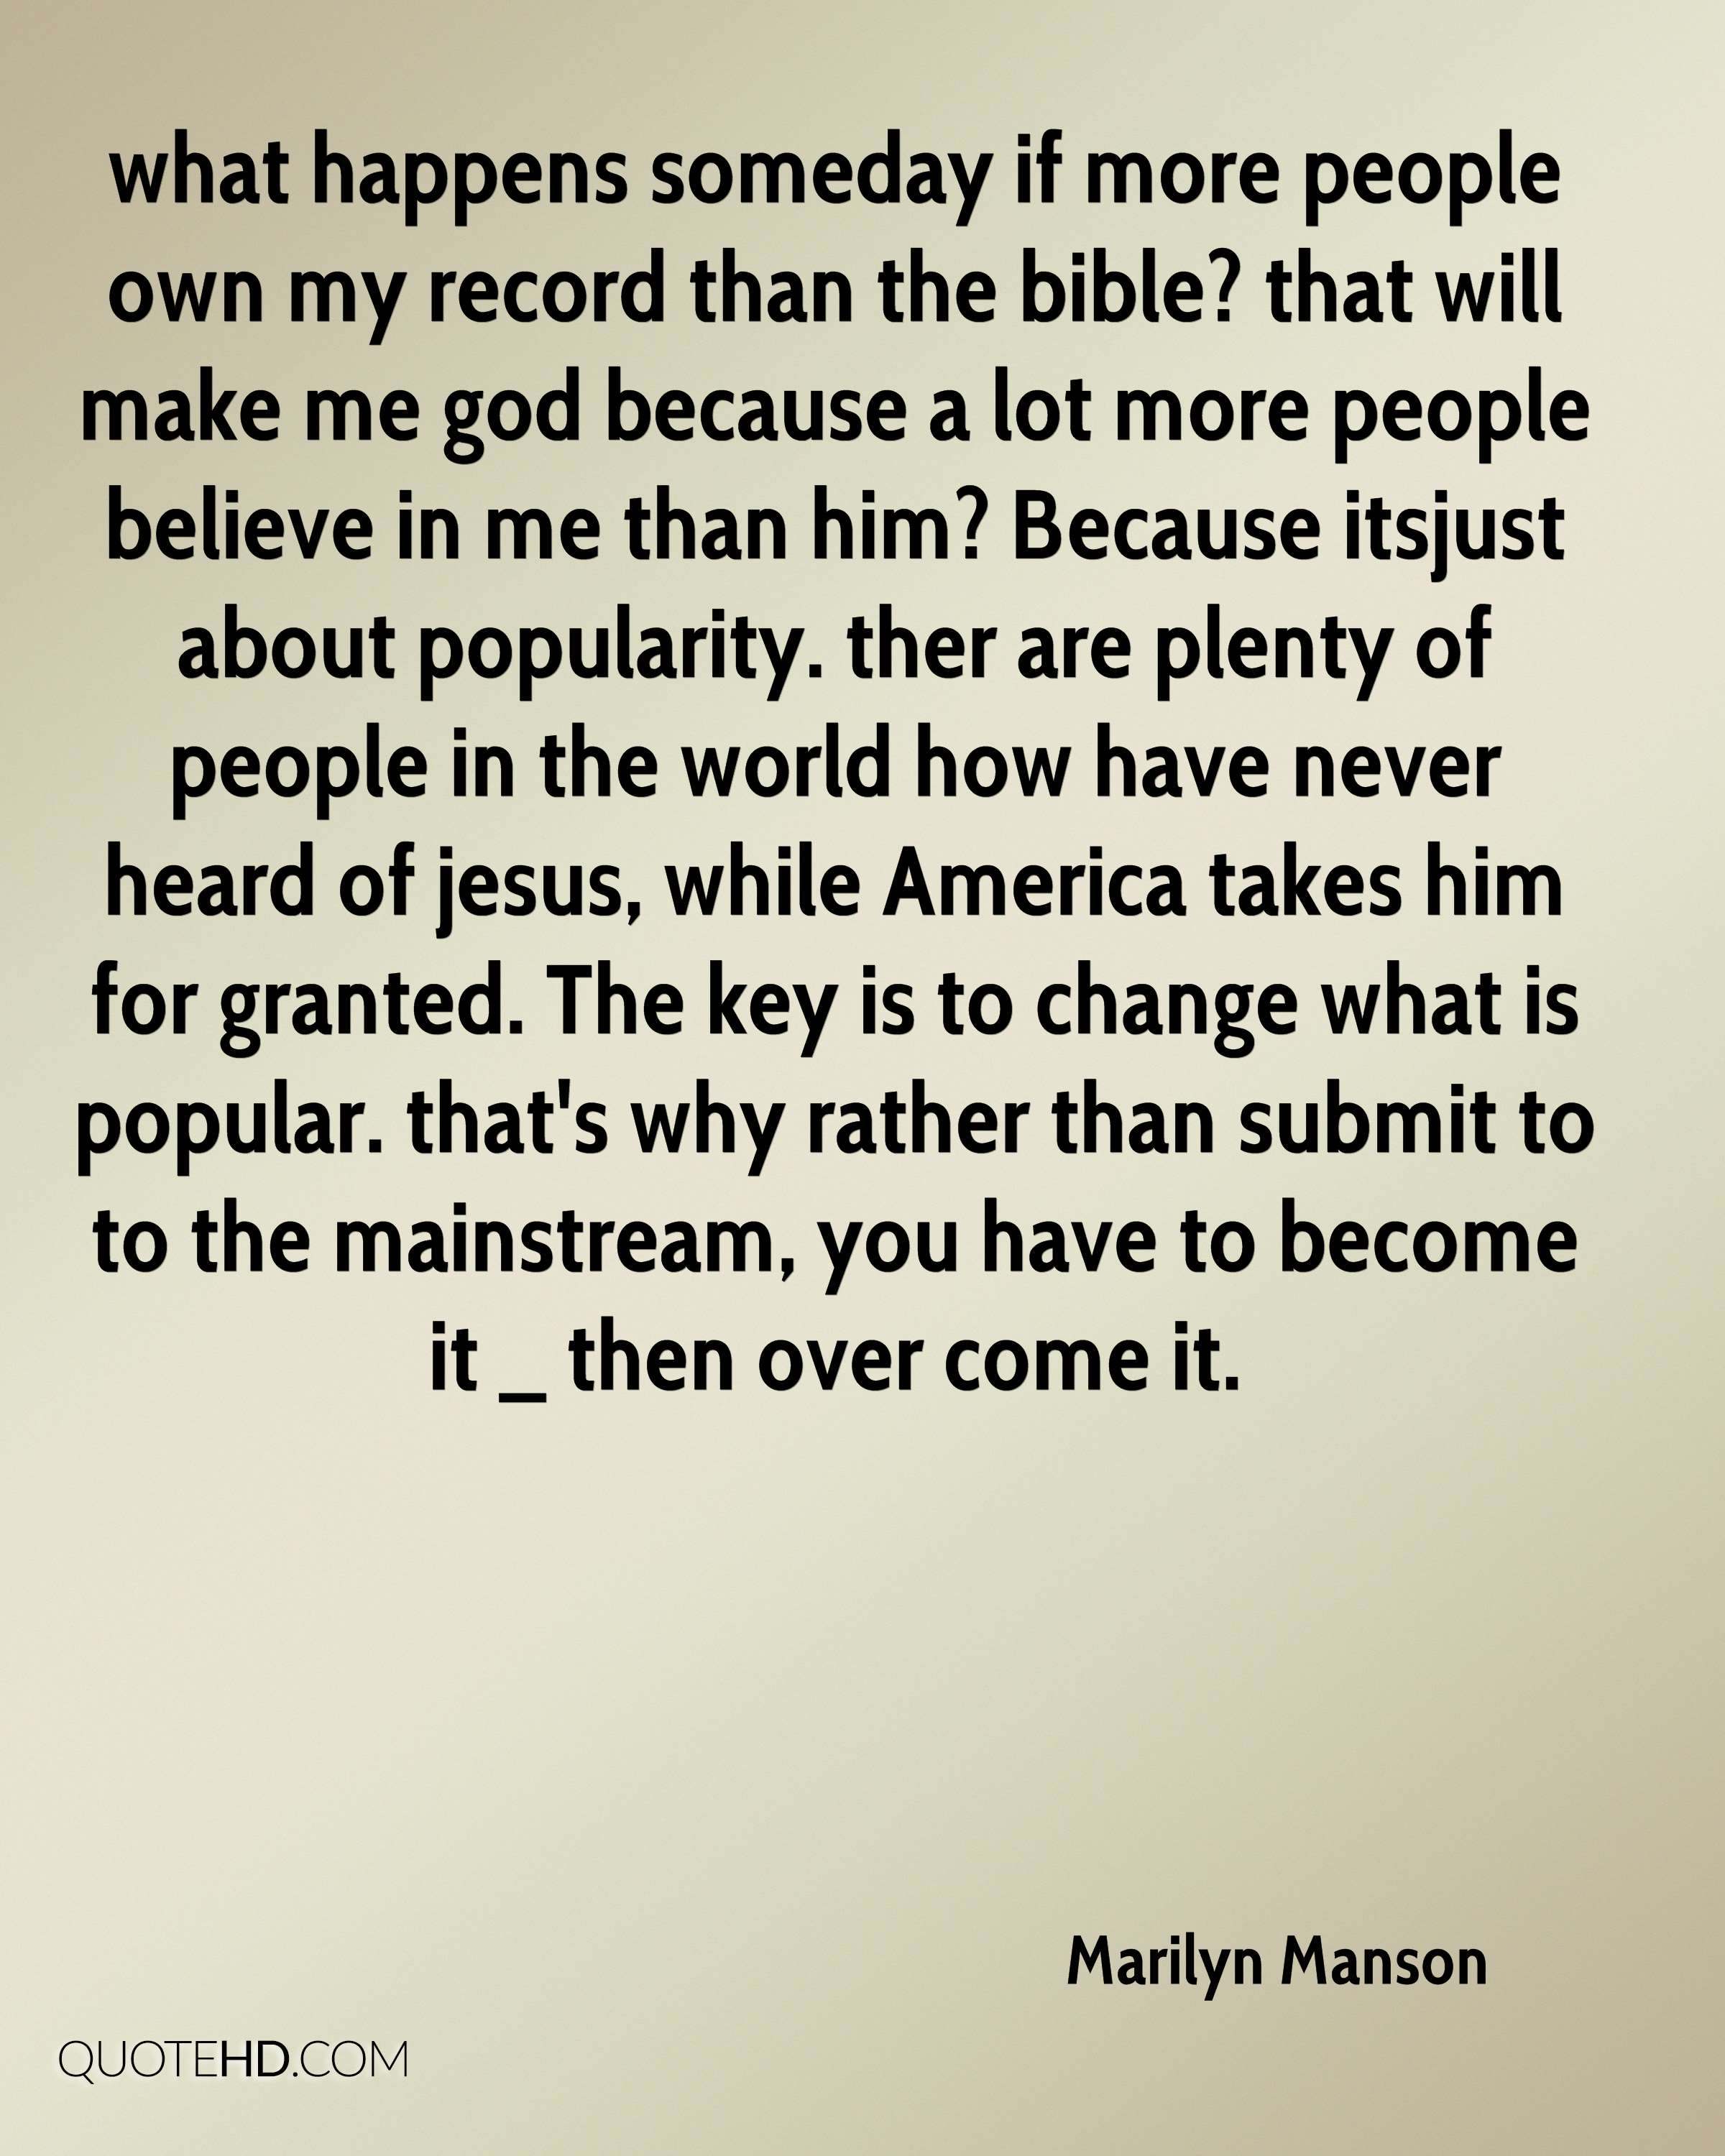 what happens someday if more people own my record than the bible? that will make me god because a lot more people believe in me than him? Because itsjust about popularity. ther are plenty of people in the world how have never heard of jesus, while America takes him for granted. The key is to change what is popular. that's why rather than submit to to the mainstream, you have to become it _ then over come it.